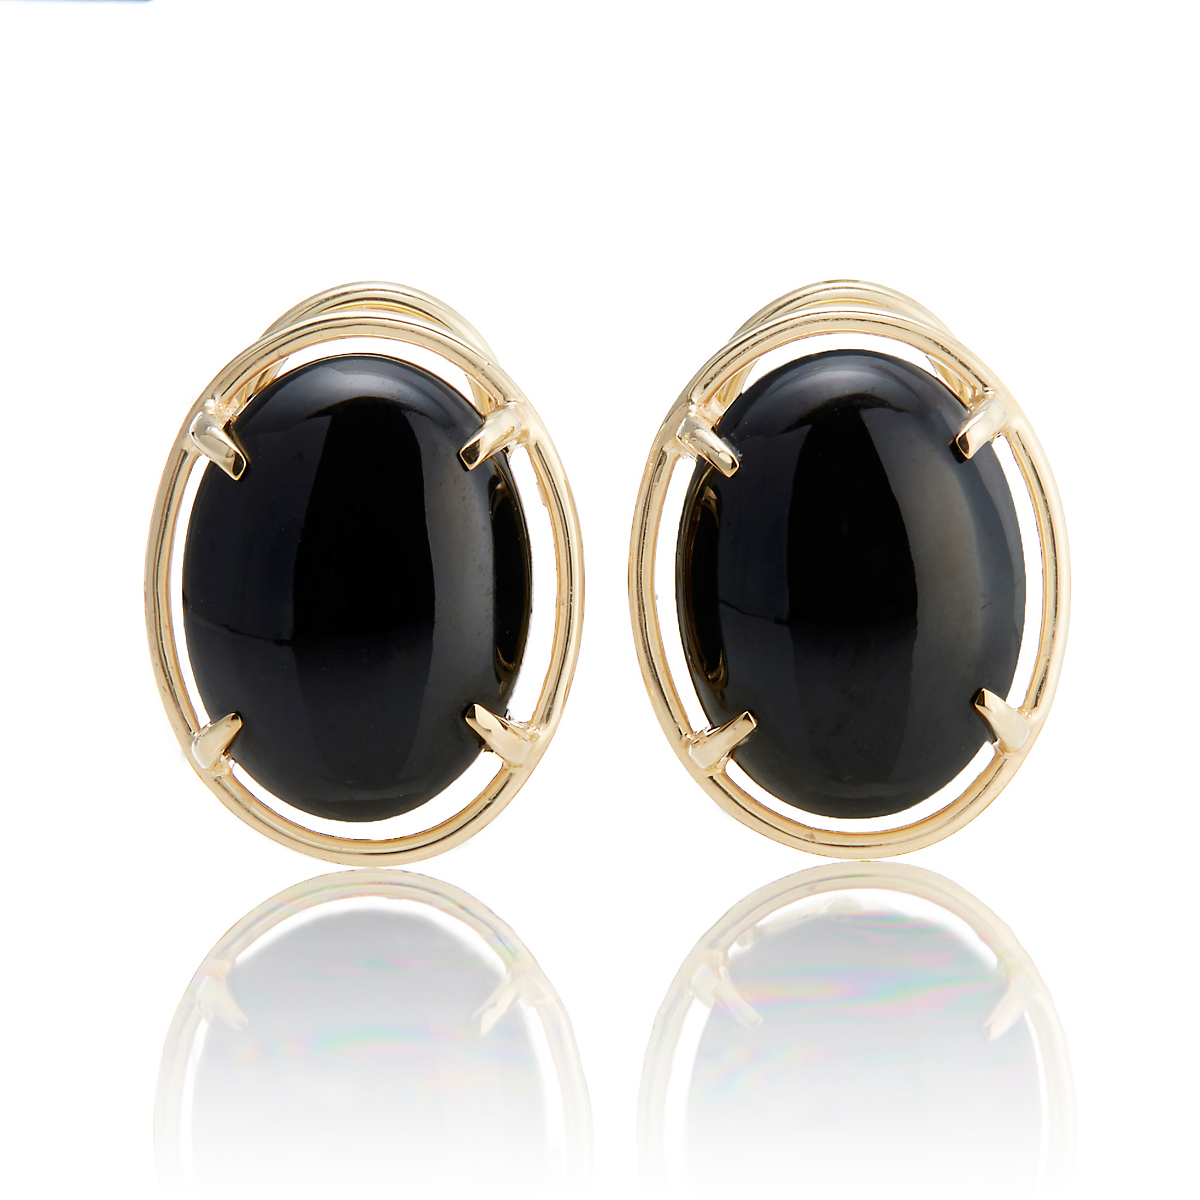 Gump's Black Jade Cabochon Earrings